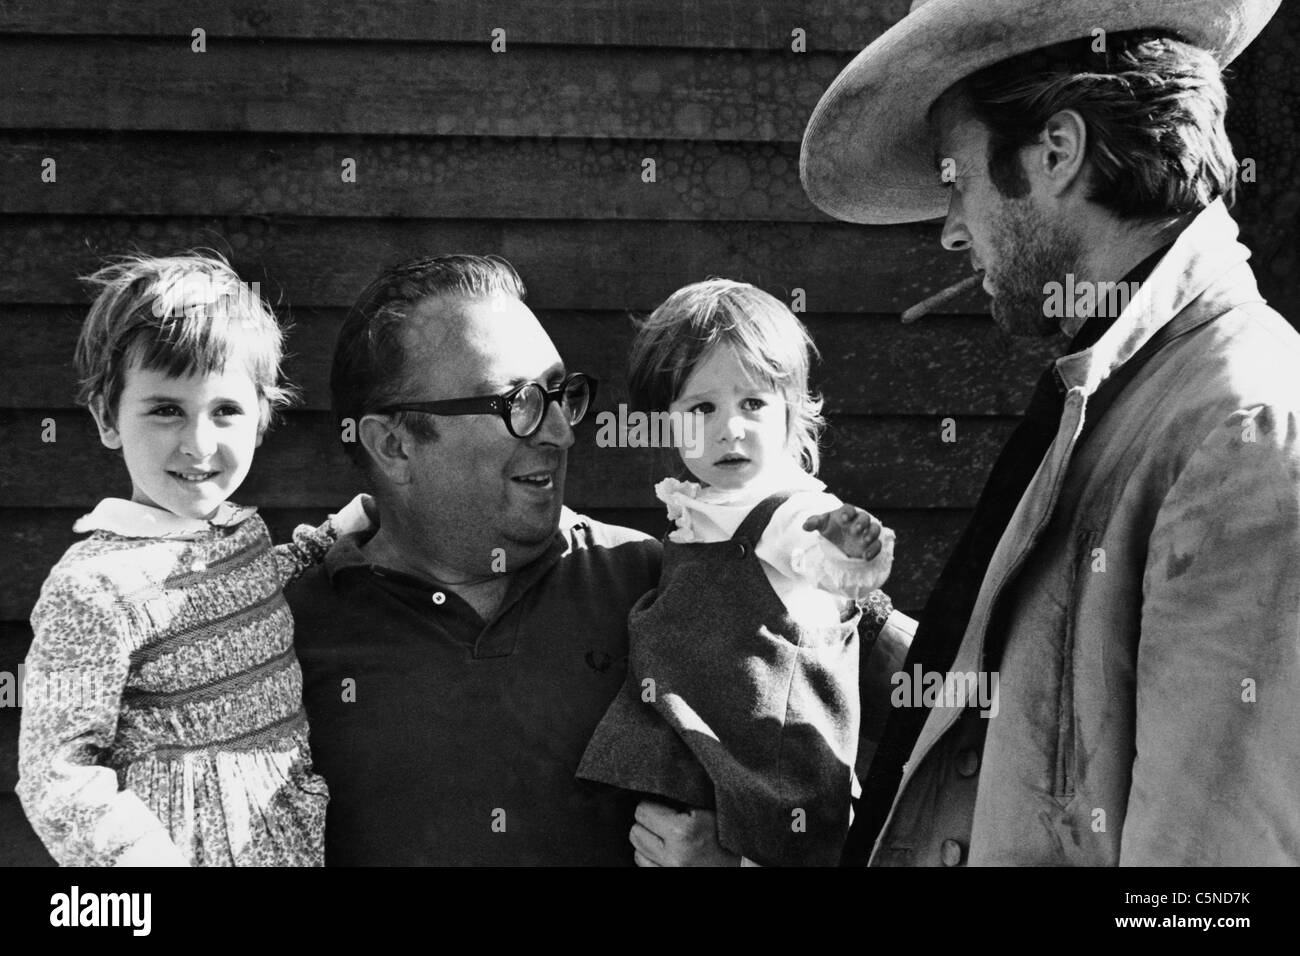 sergio leone whith his daughters, clint eastwood, 1966 - Stock Image